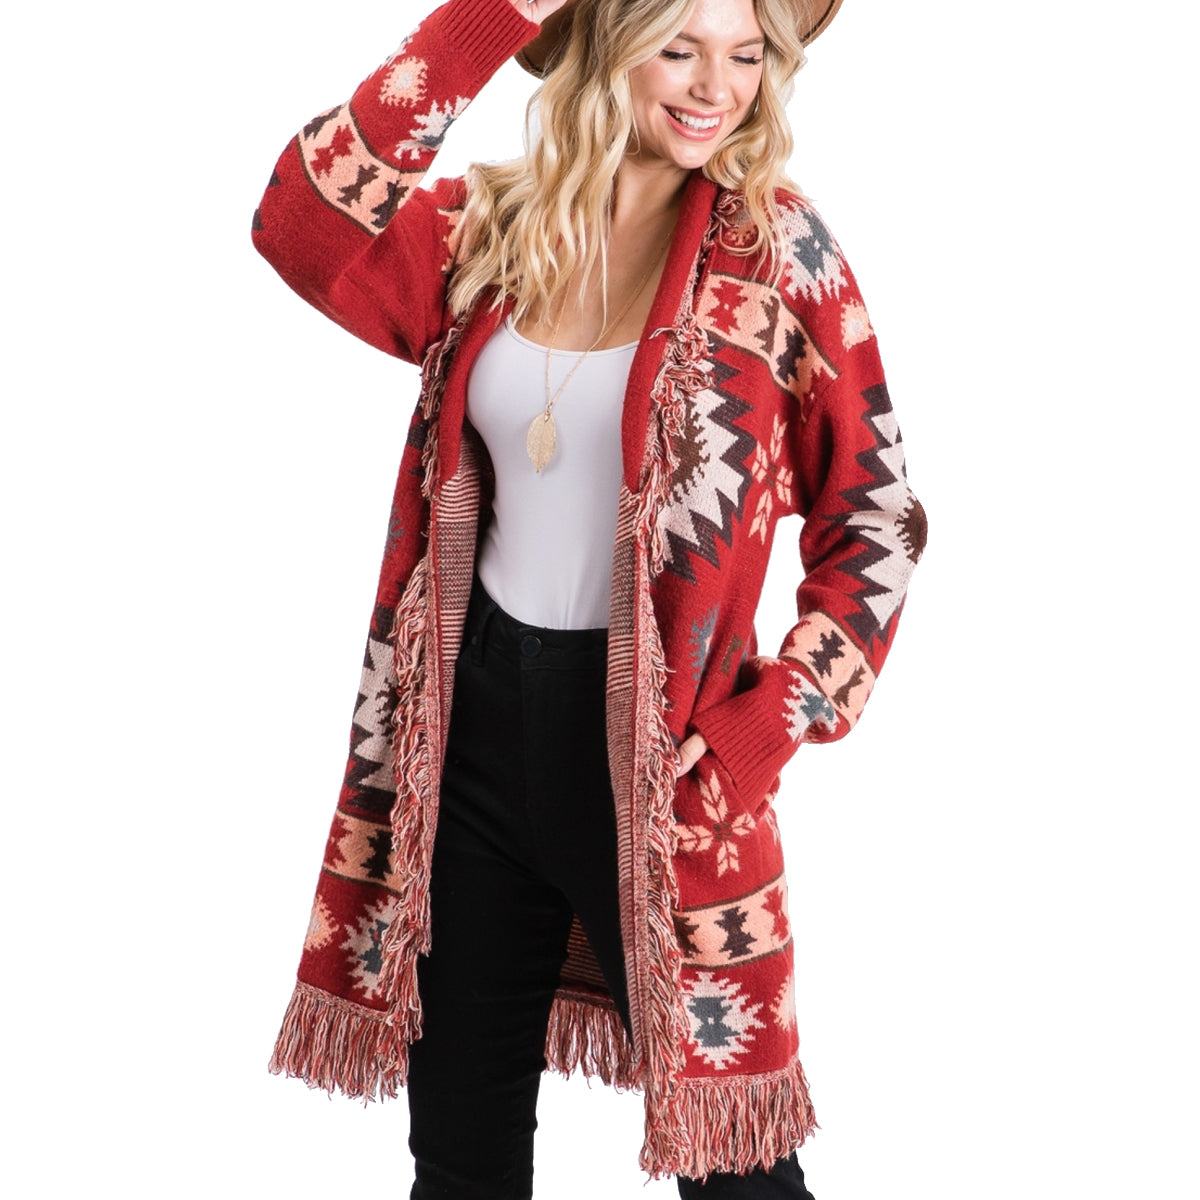 Jodifil Women's Tribal Print Cardigan - Brick